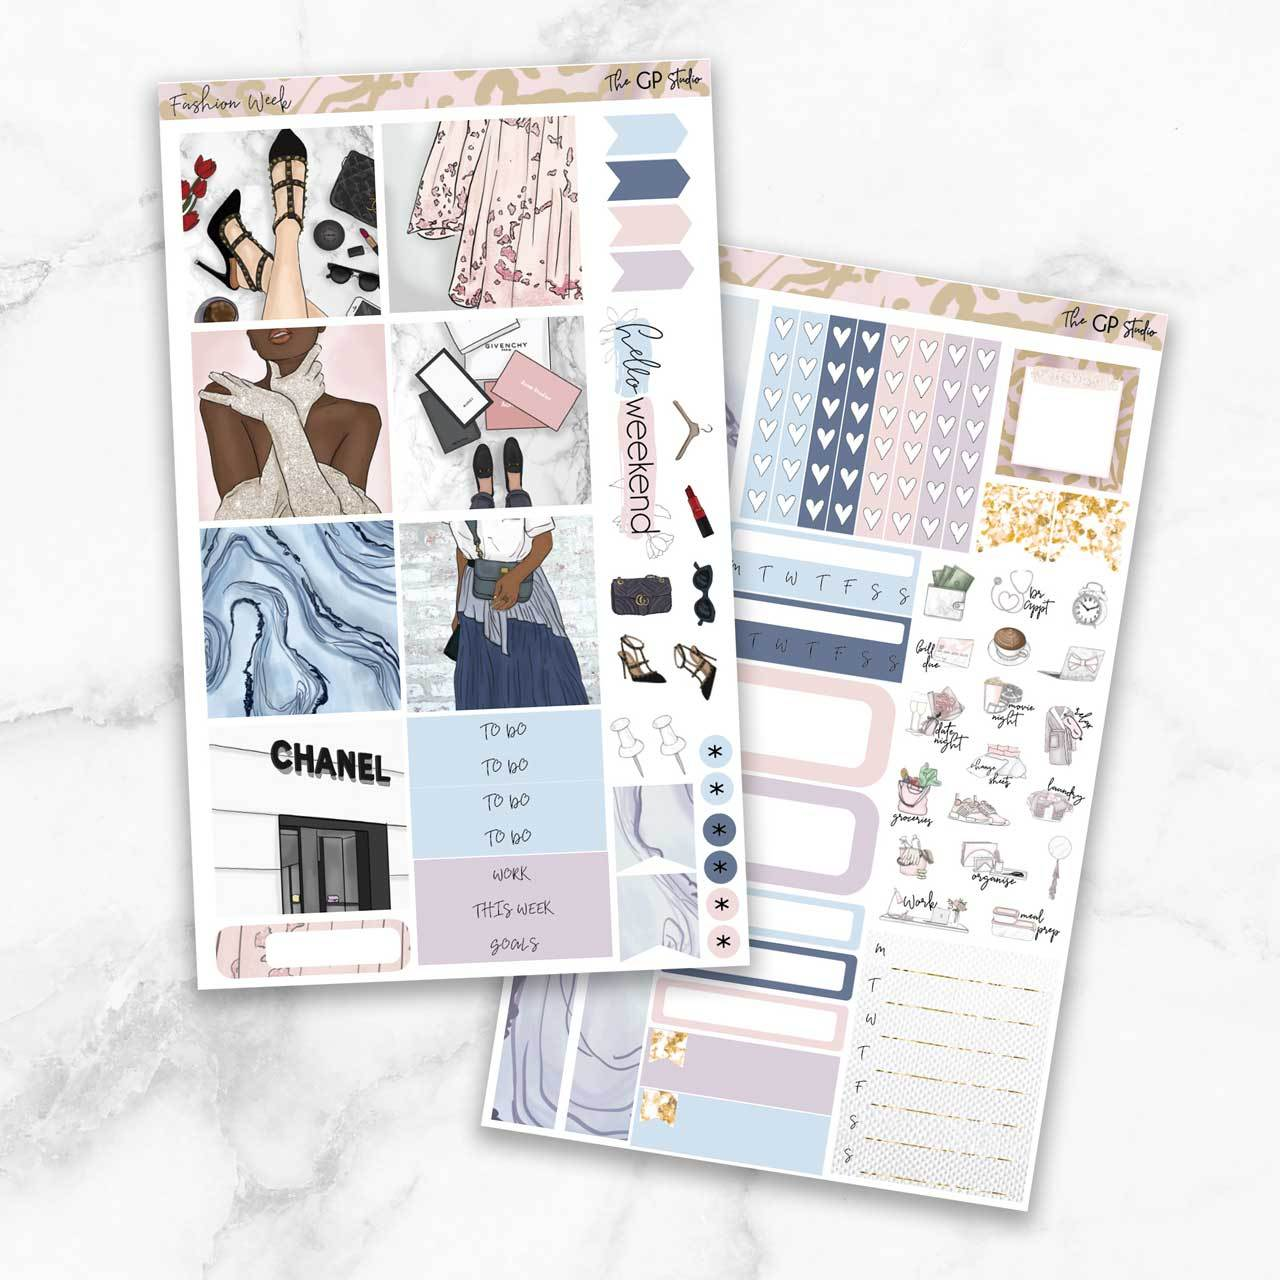 FASHION WEEK Mini Size Planner Sticker Kit-The GP Studio